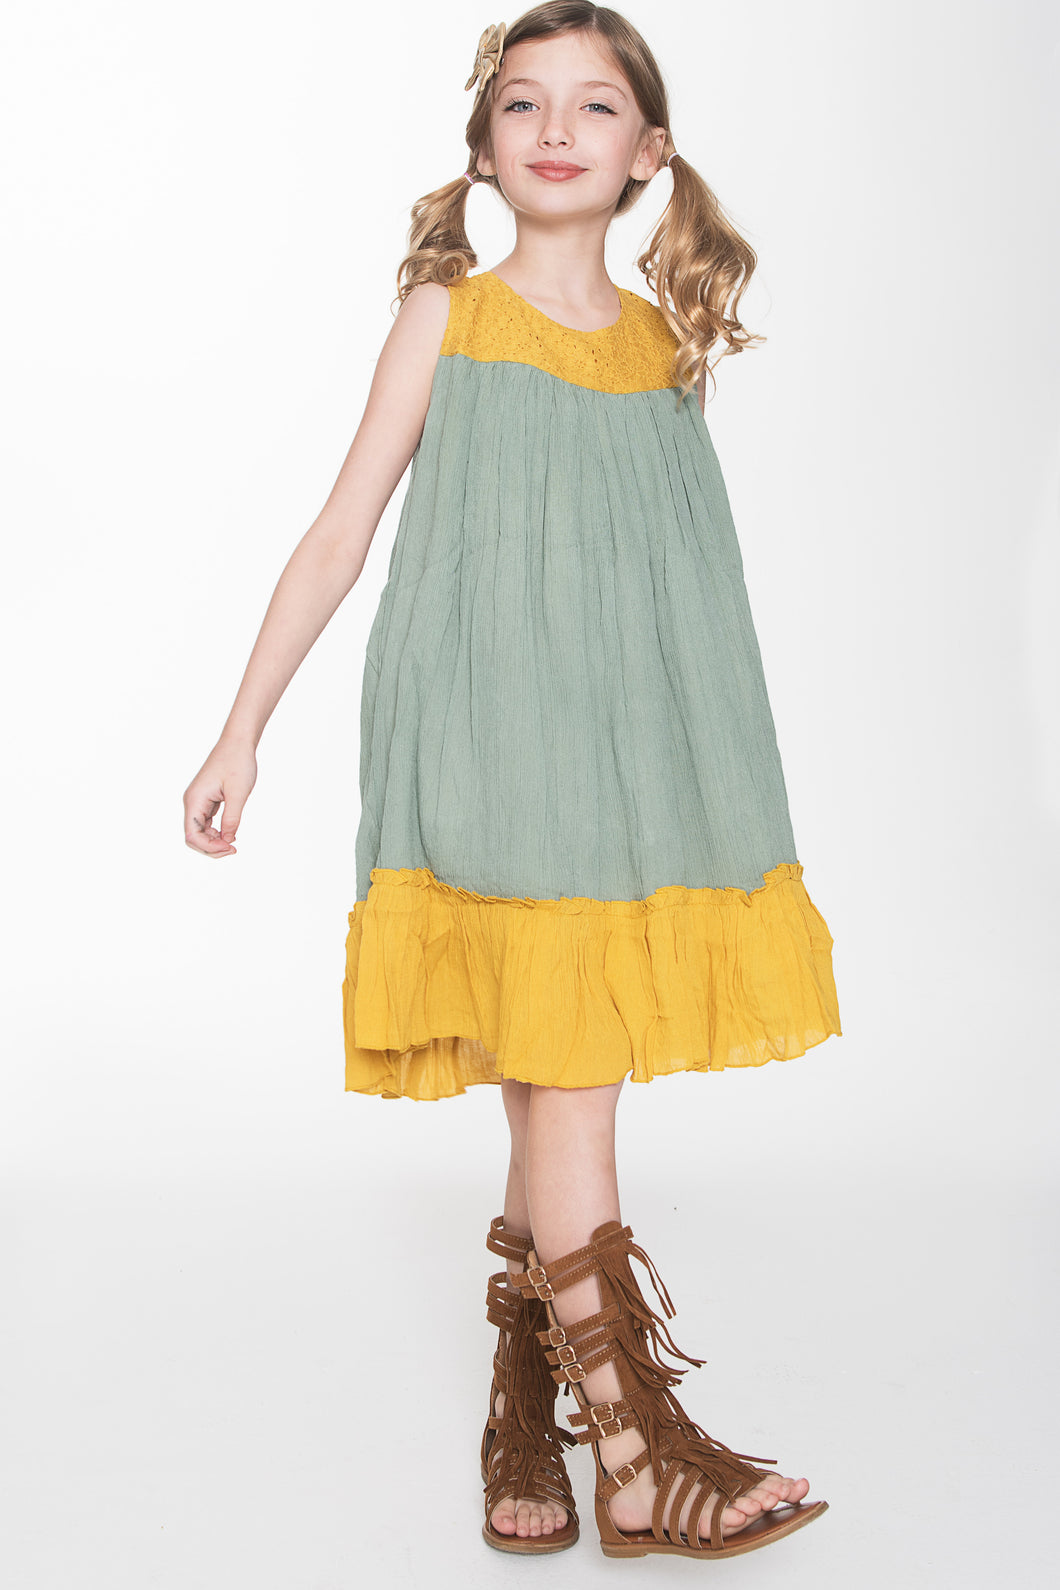 Yellow and Muddy Green Dress - Kids Wholesale Boutique Clothing, Dress - Girls Dresses, Yo Baby Wholesale - Yo Baby